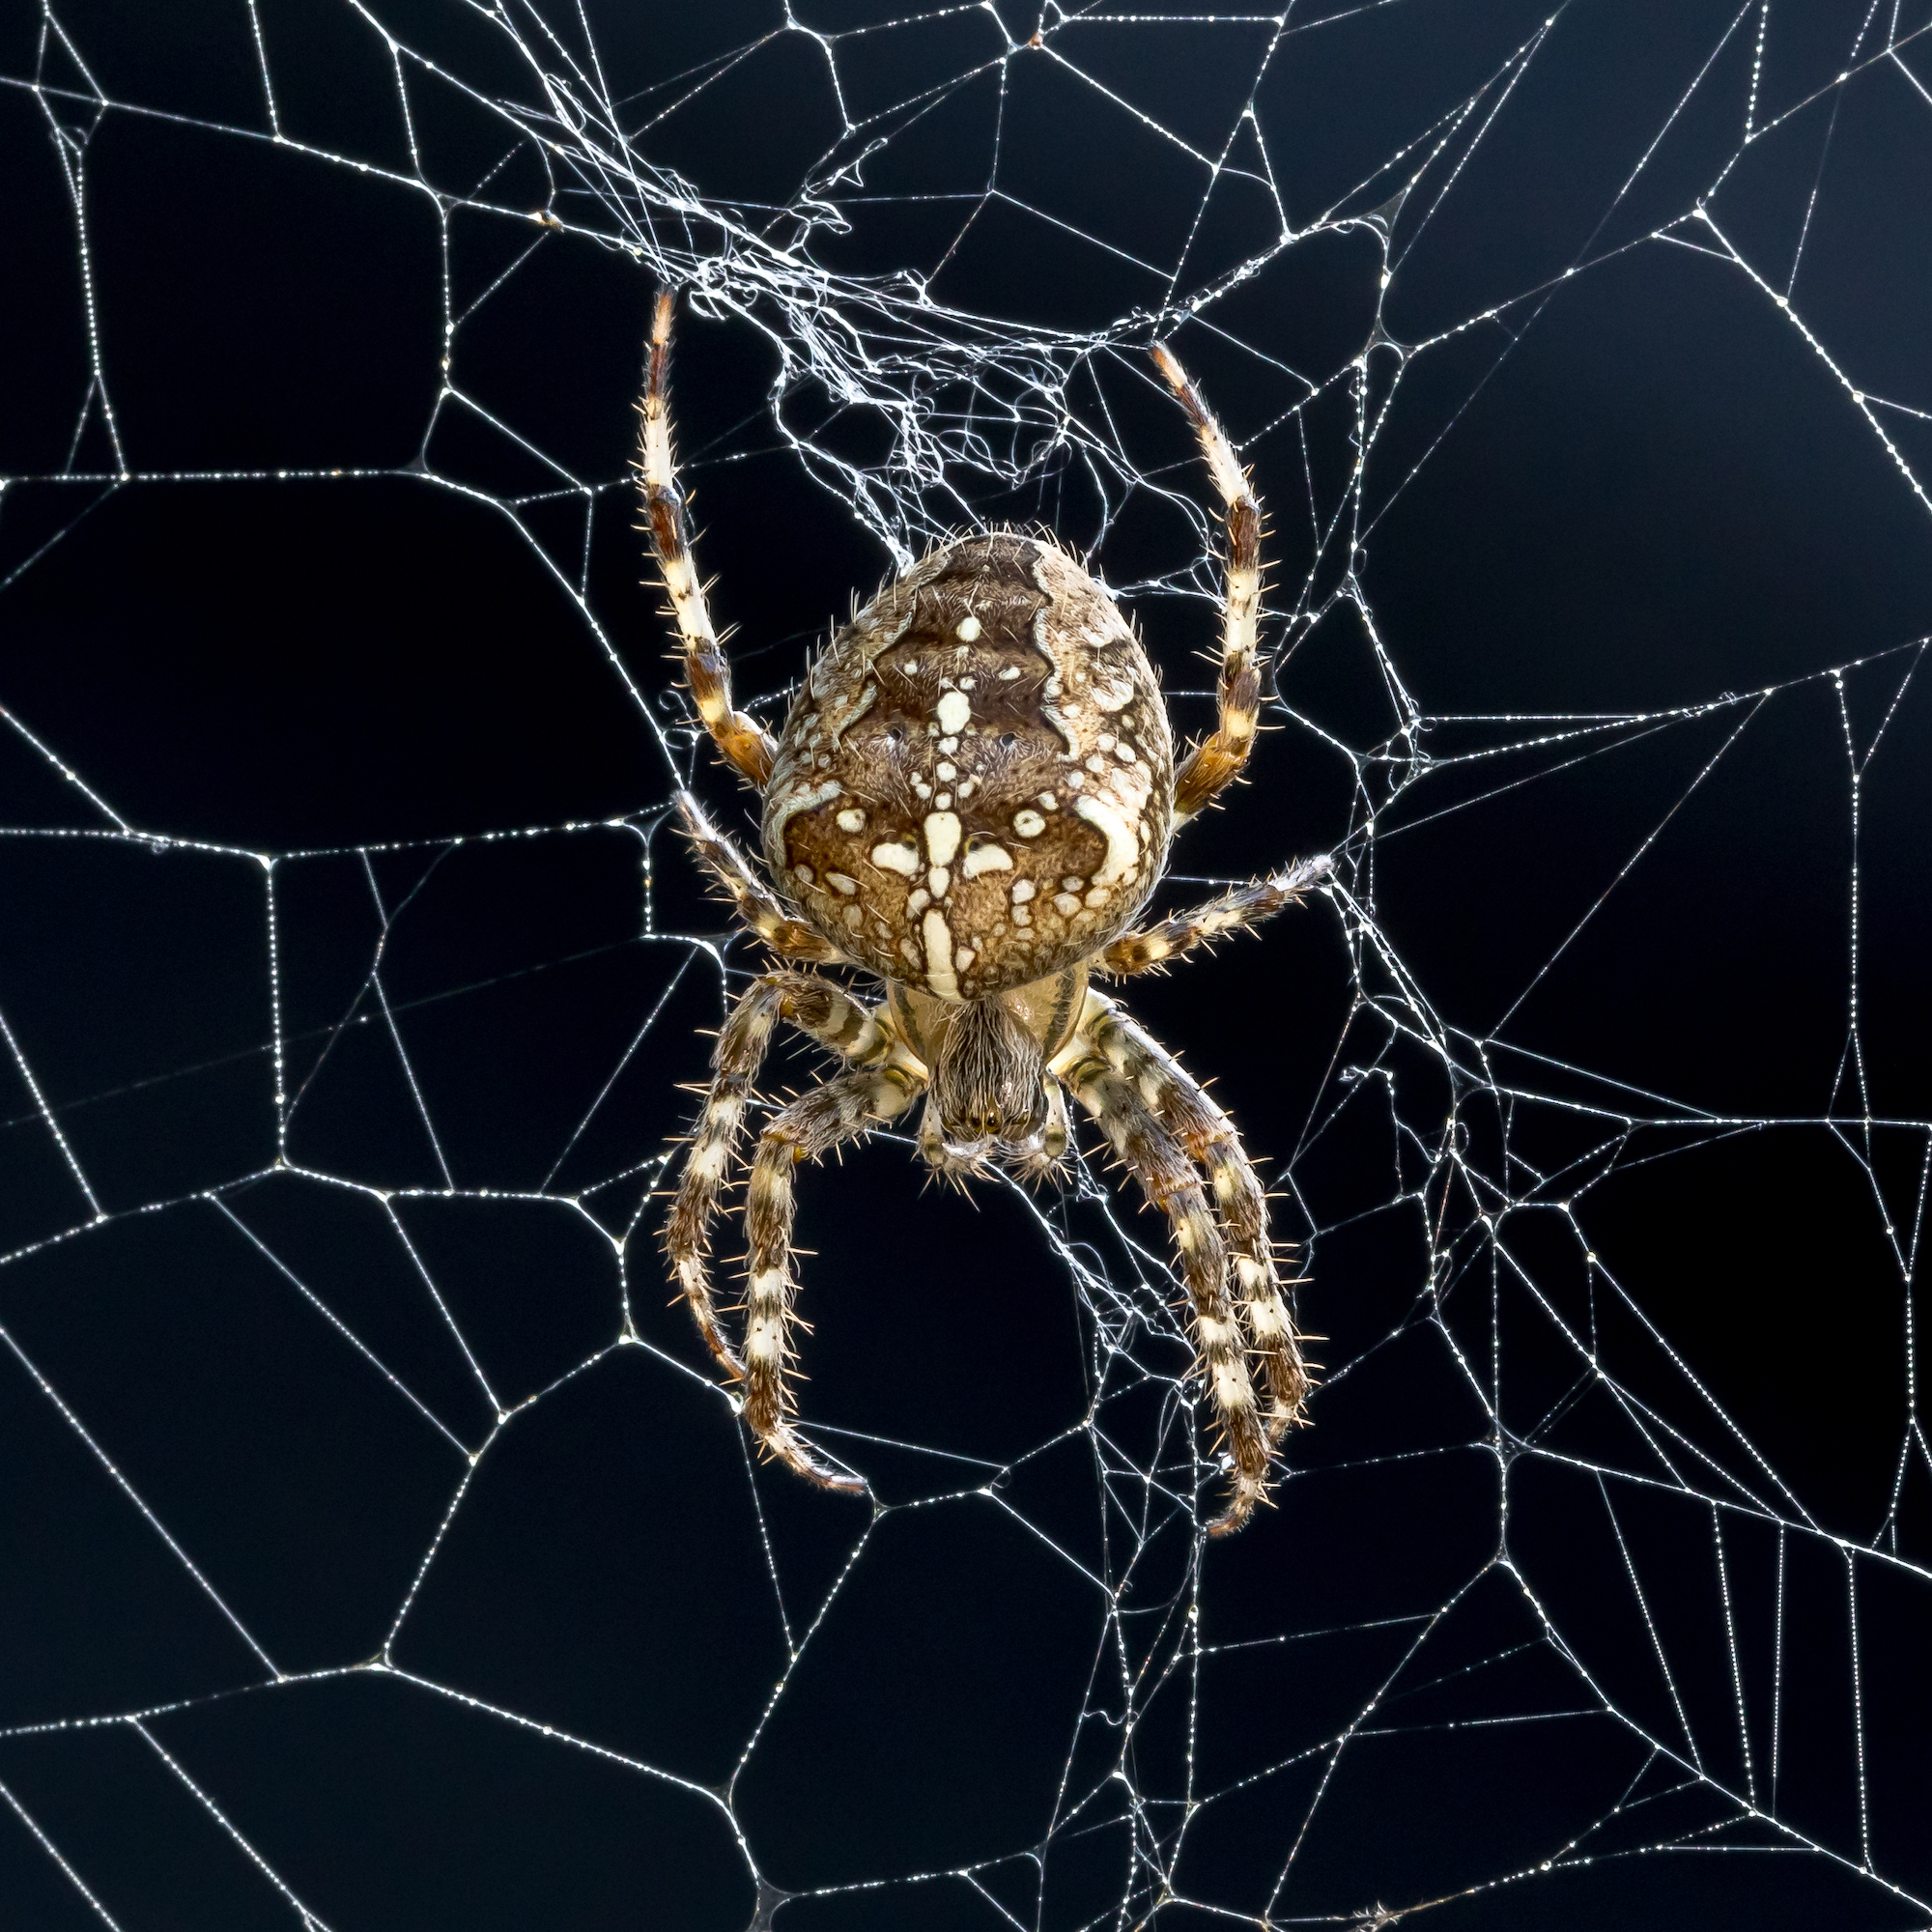 Cross-Orb Spider